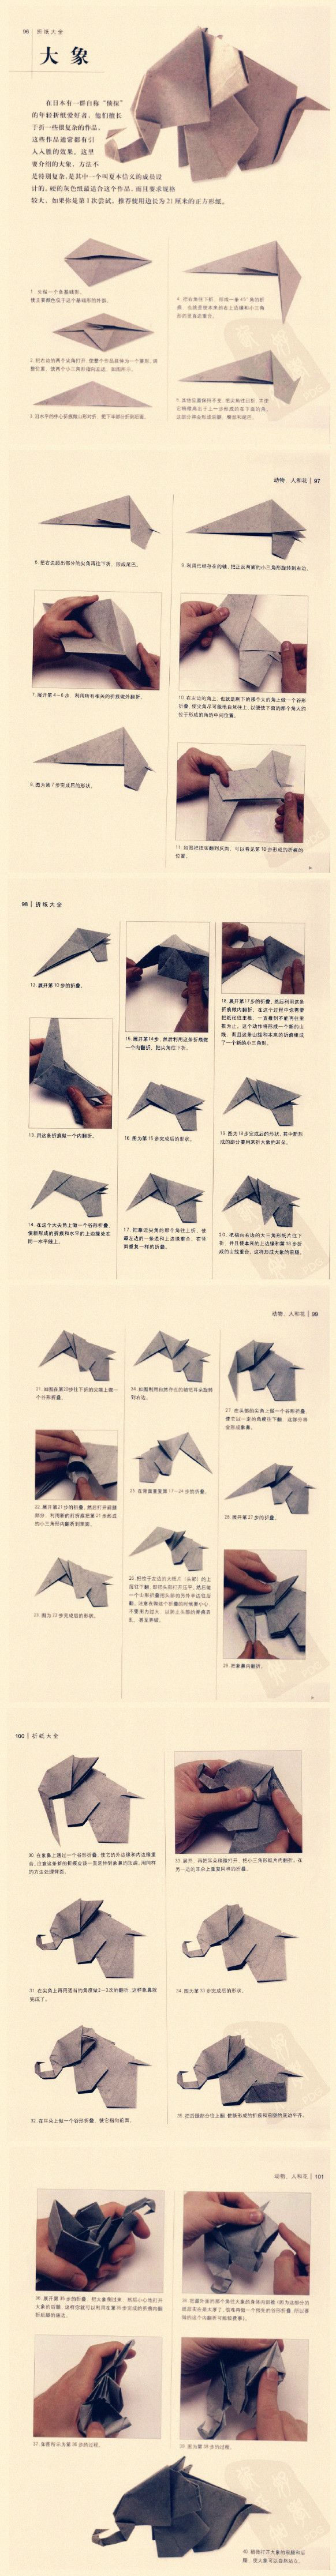 Elephant origami: My art club kids think I'm obsessed with Elephants. And maybe I am. This will be the final straw I think.